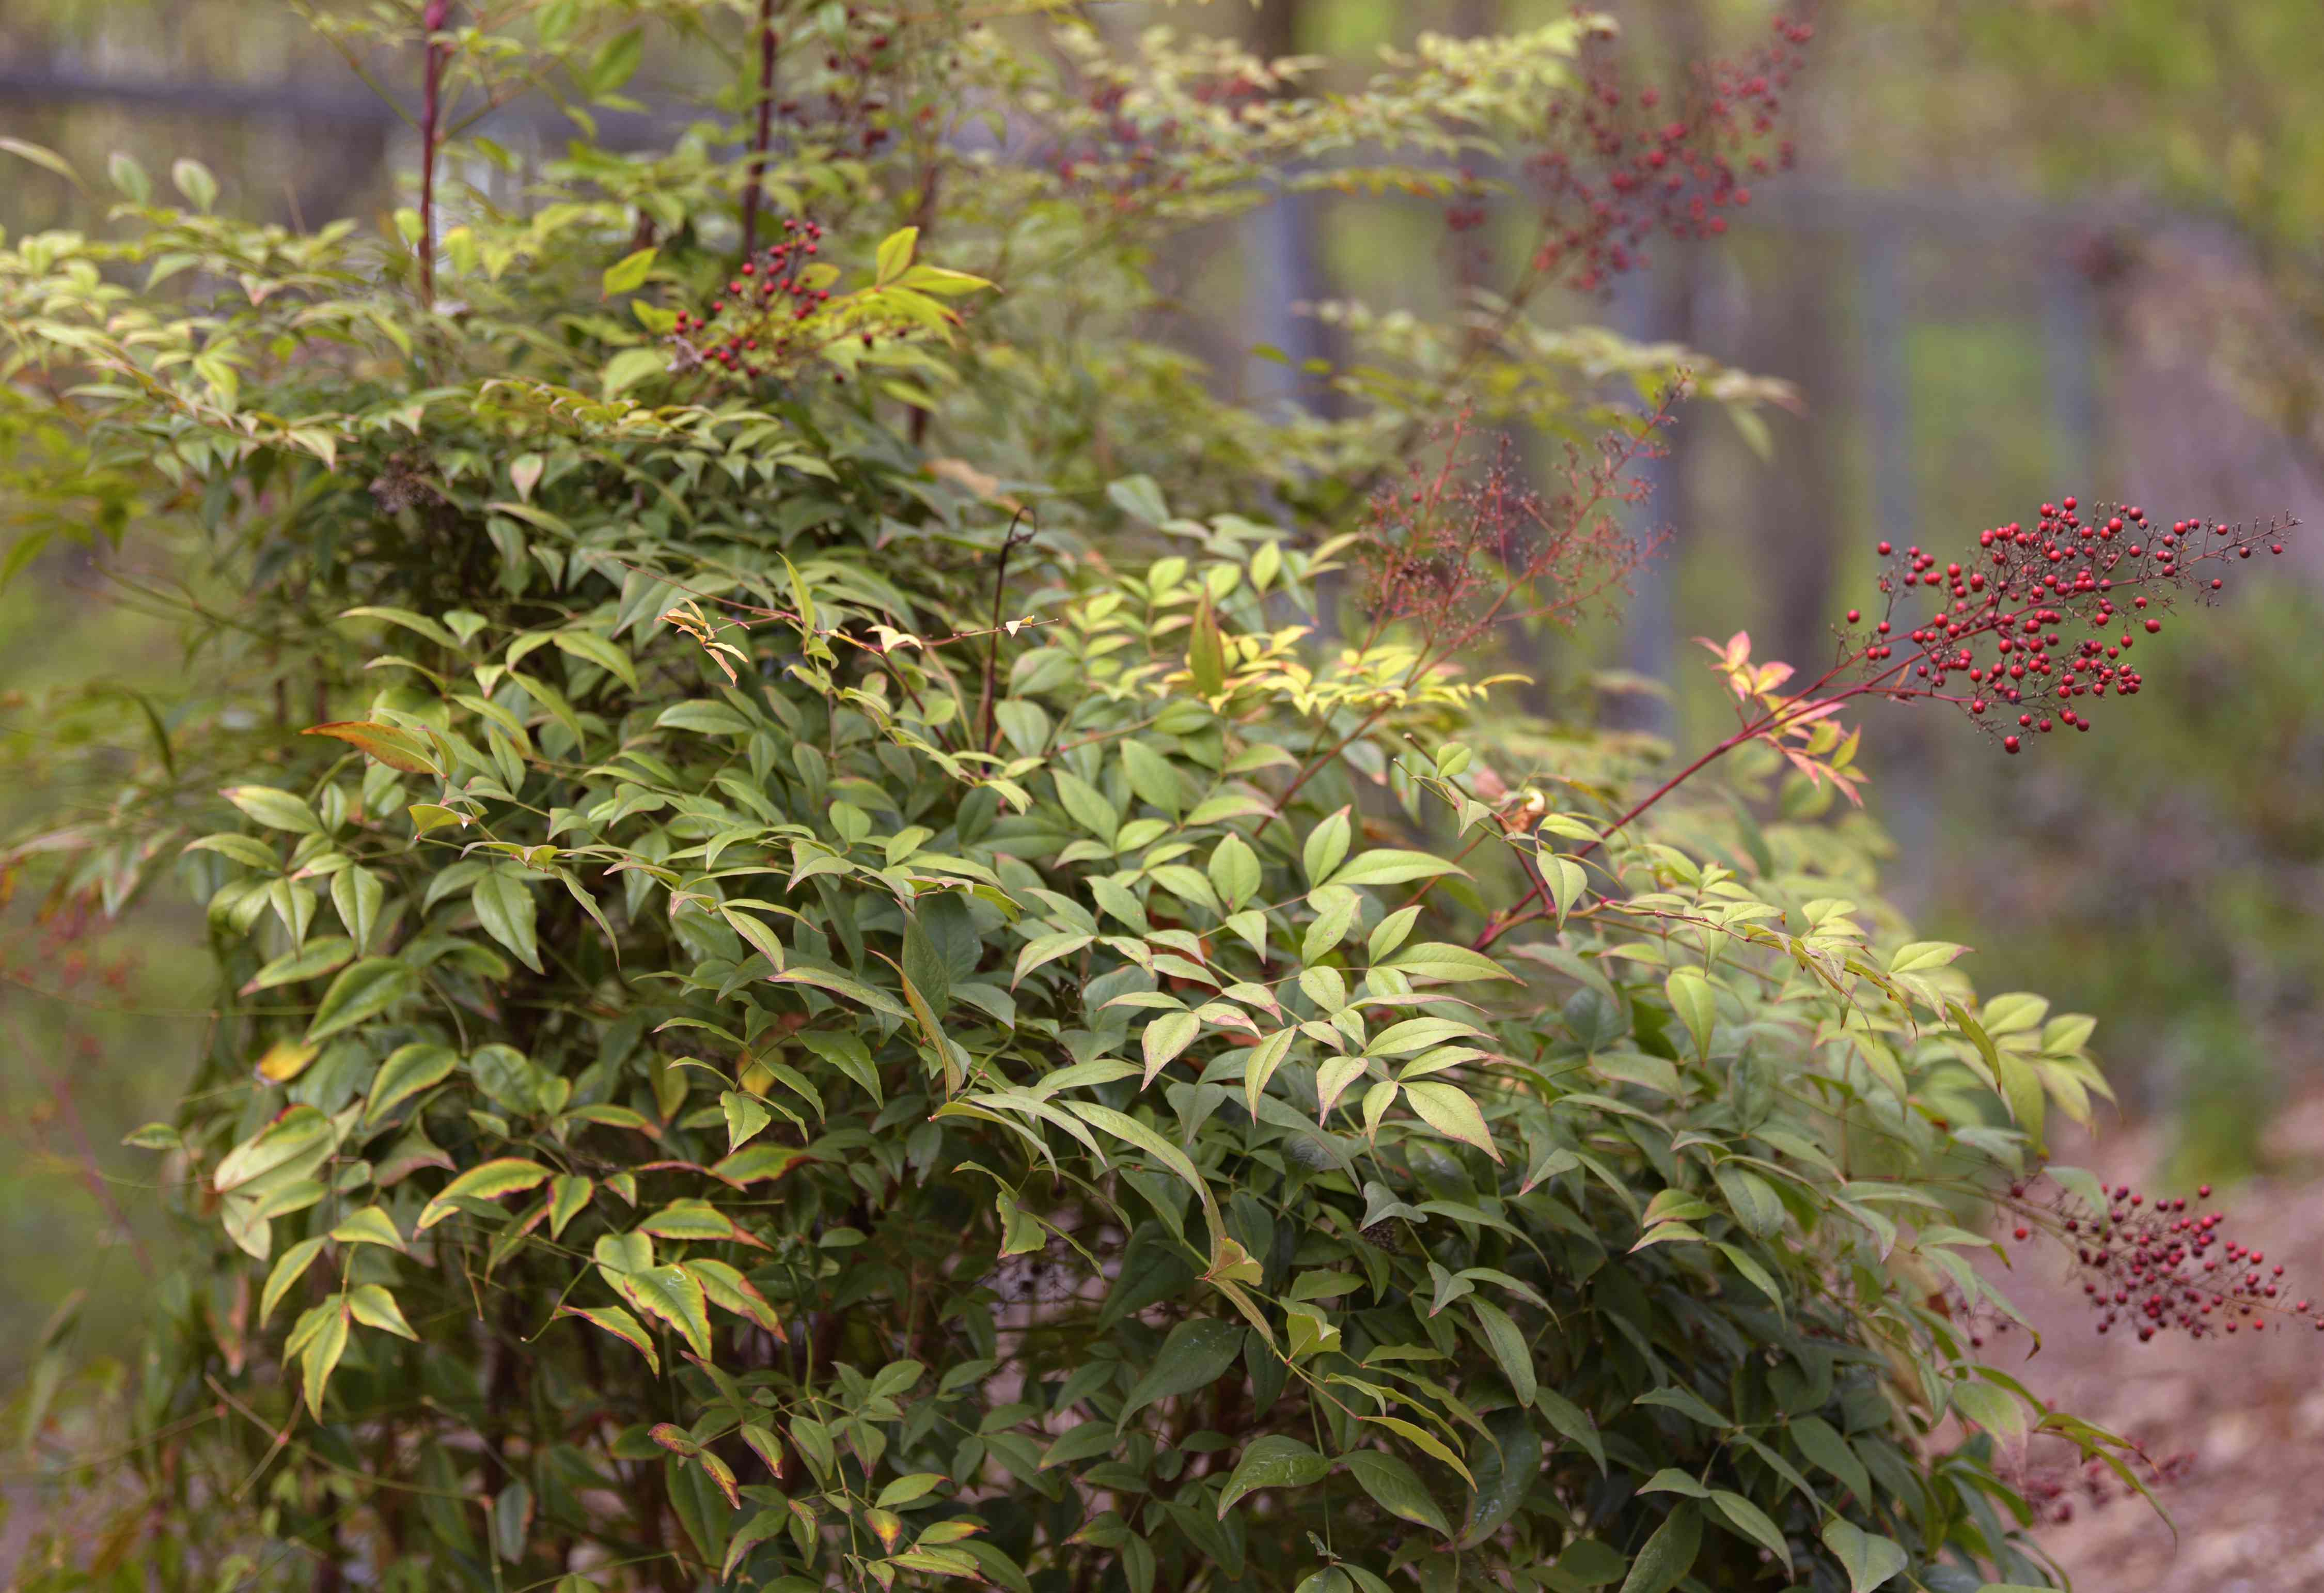 Heavenly bamboo shrub with light green leaves and small red berry clusters on thin red stems